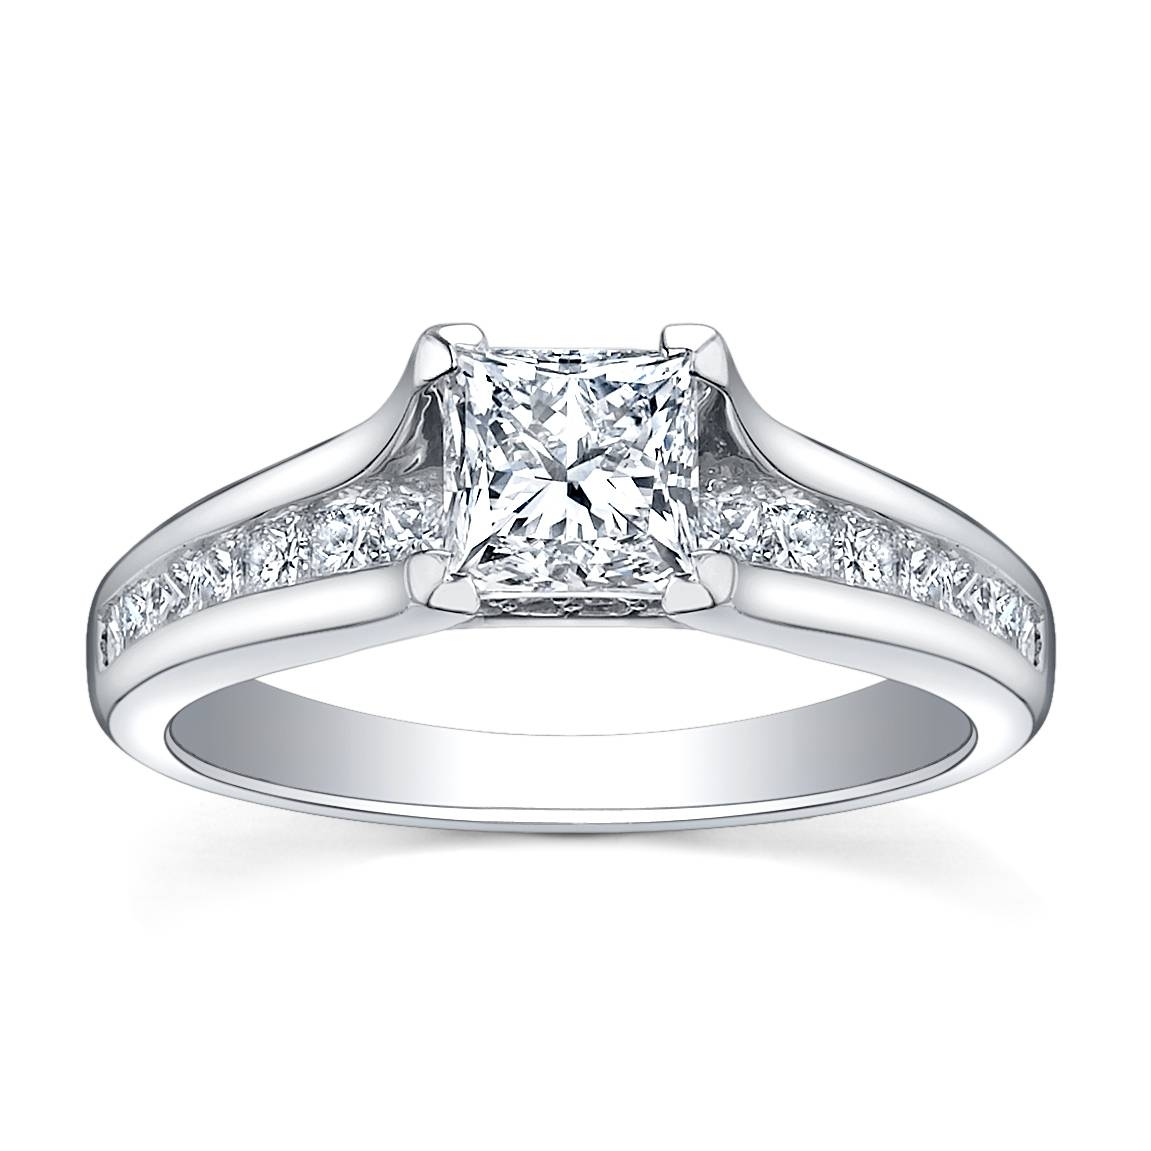 Unique White Gold Diamond Rings | Wedding, Promise, Diamond Inside White Gold And Diamond Wedding Rings (Gallery 10 of 15)